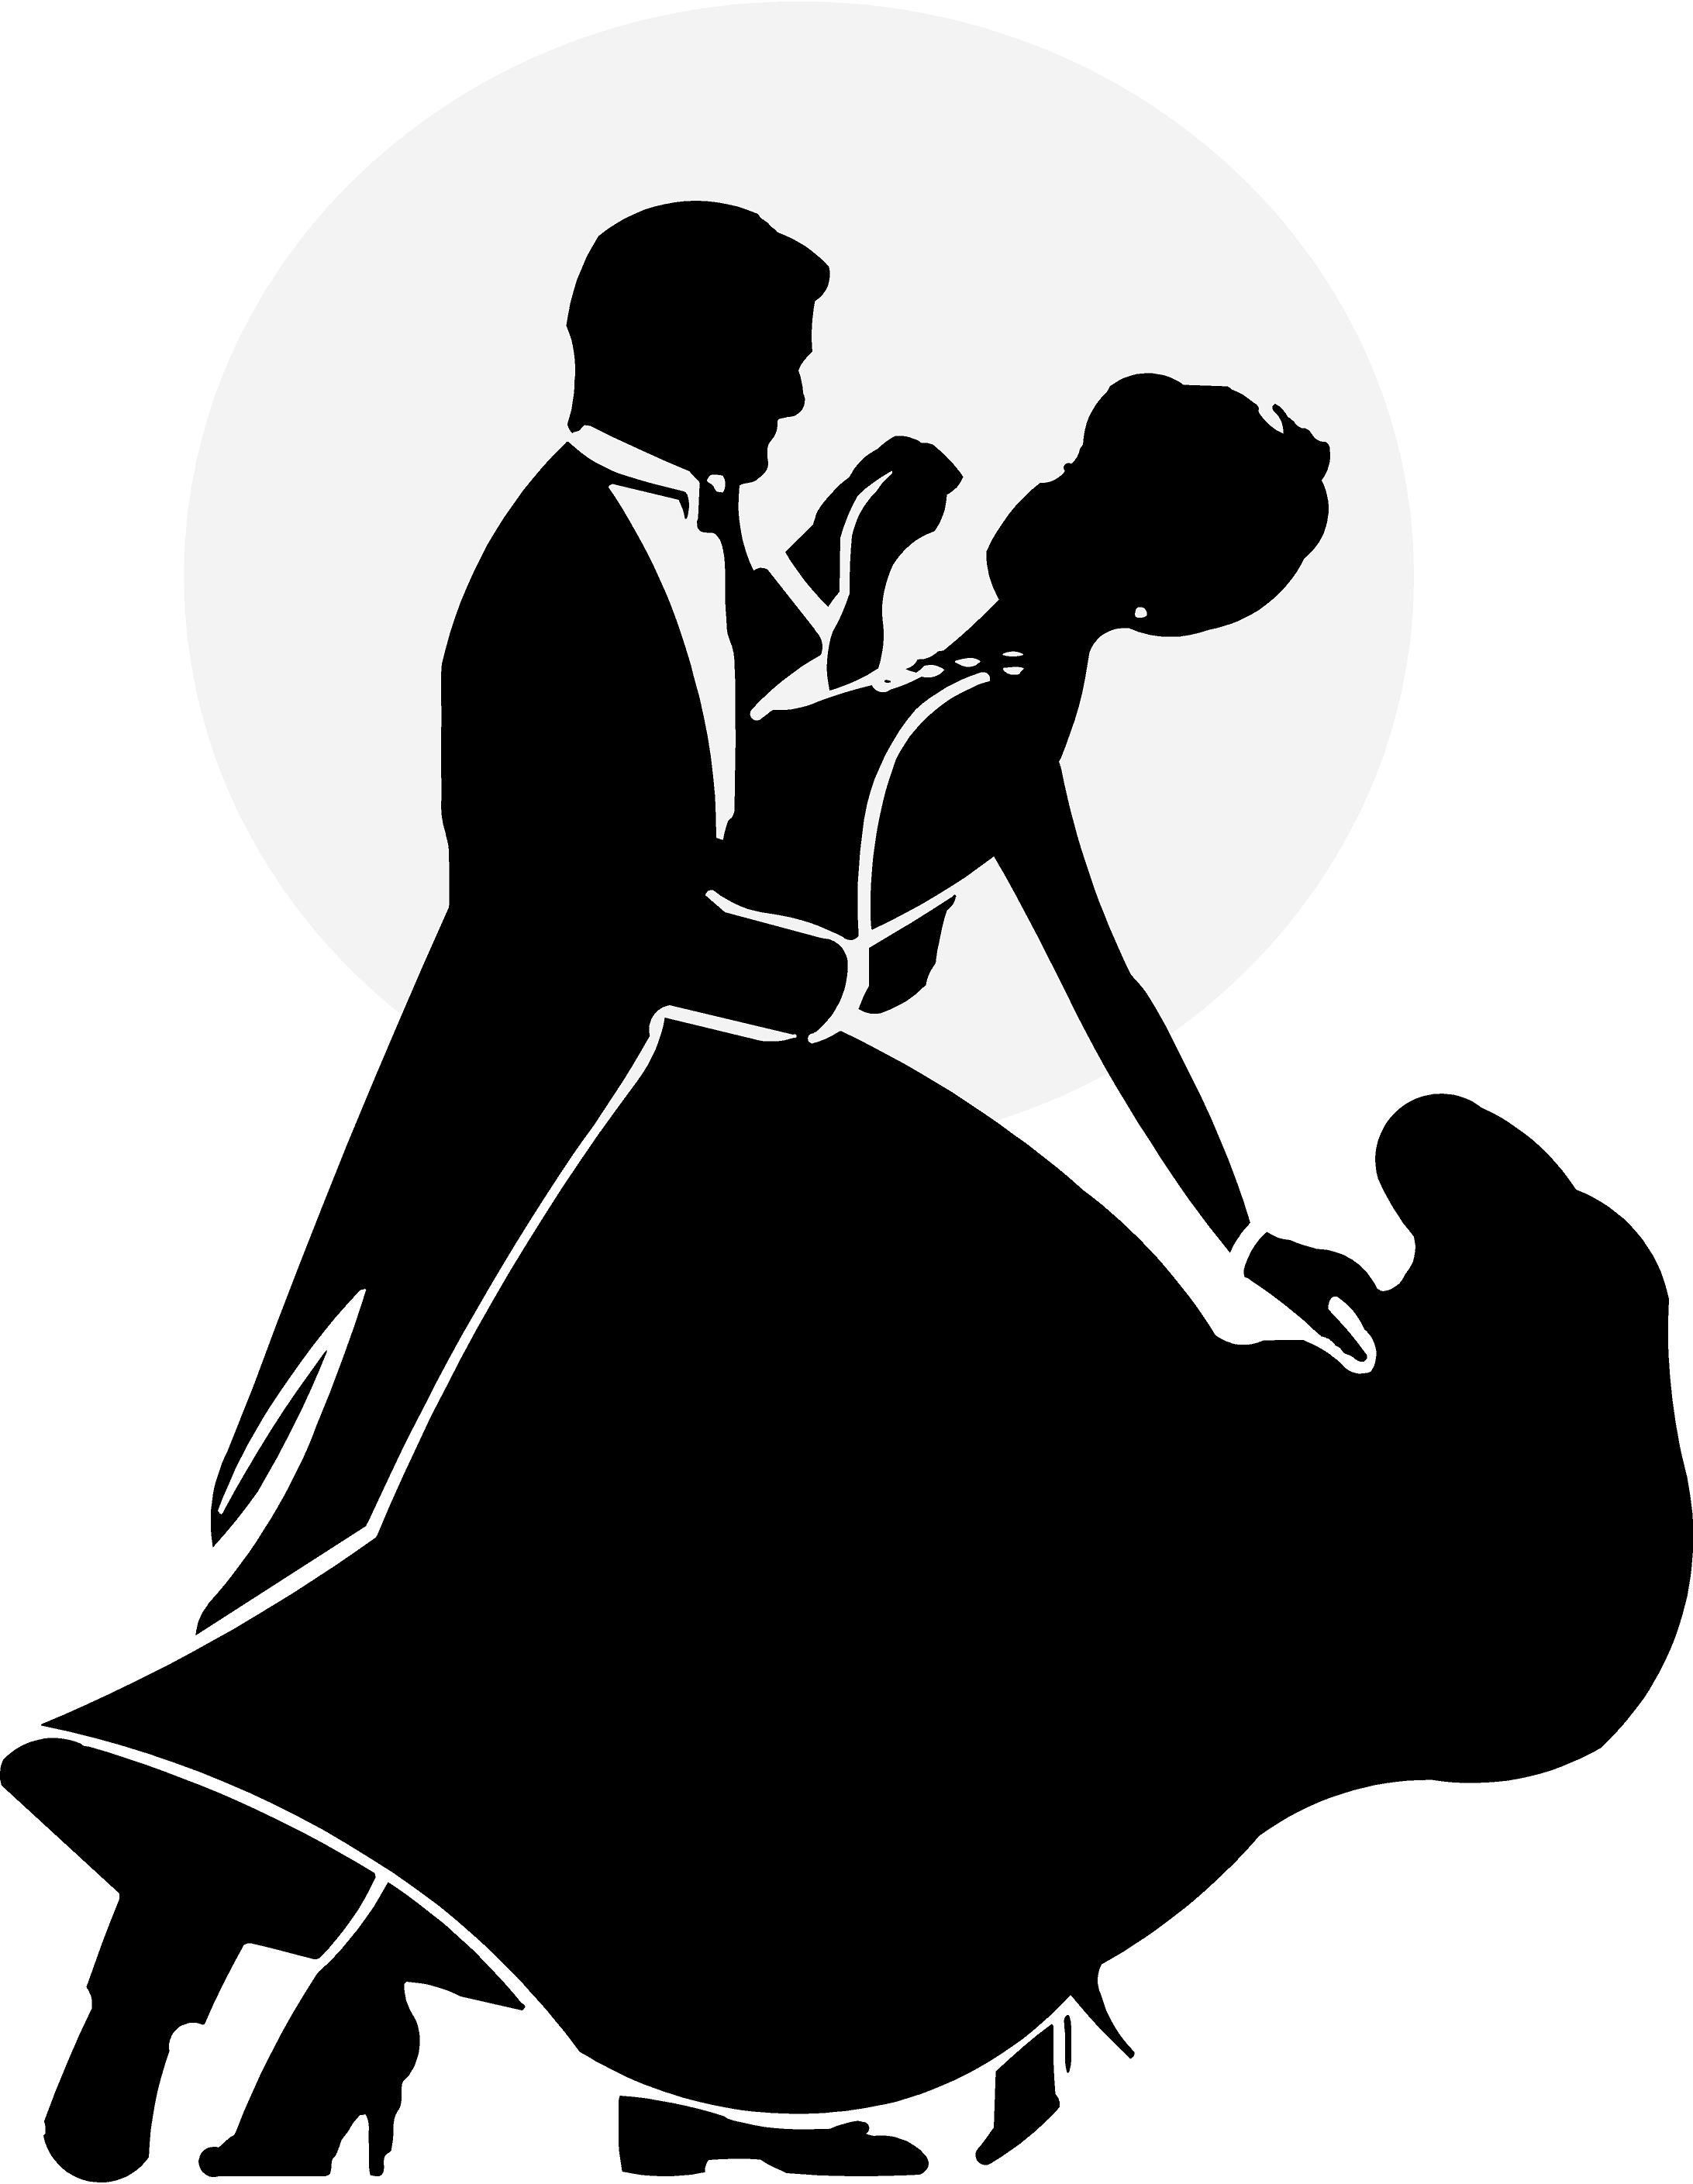 2184x2818 Silhouette Illustration Of Young Couple Ballroom Dancing Stock